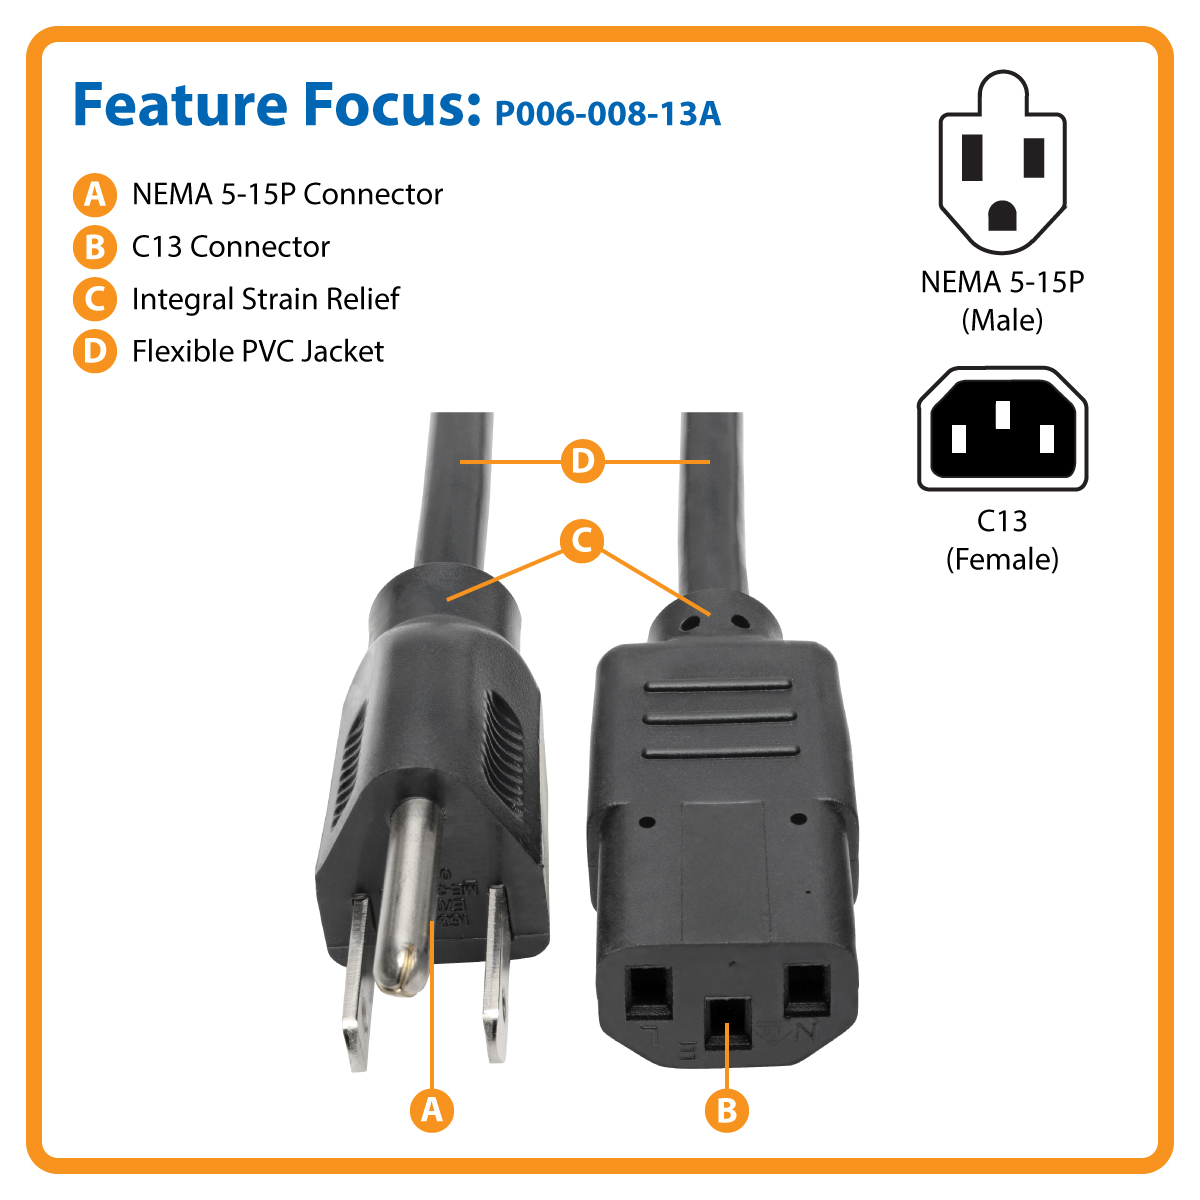 Tripp Lite 8ft Computer Power Cord Cable 5 15p To C13 13a 16awg 8 By Extension Replacement Plug Terminal Replace Your Worn Out Or Missing Cords